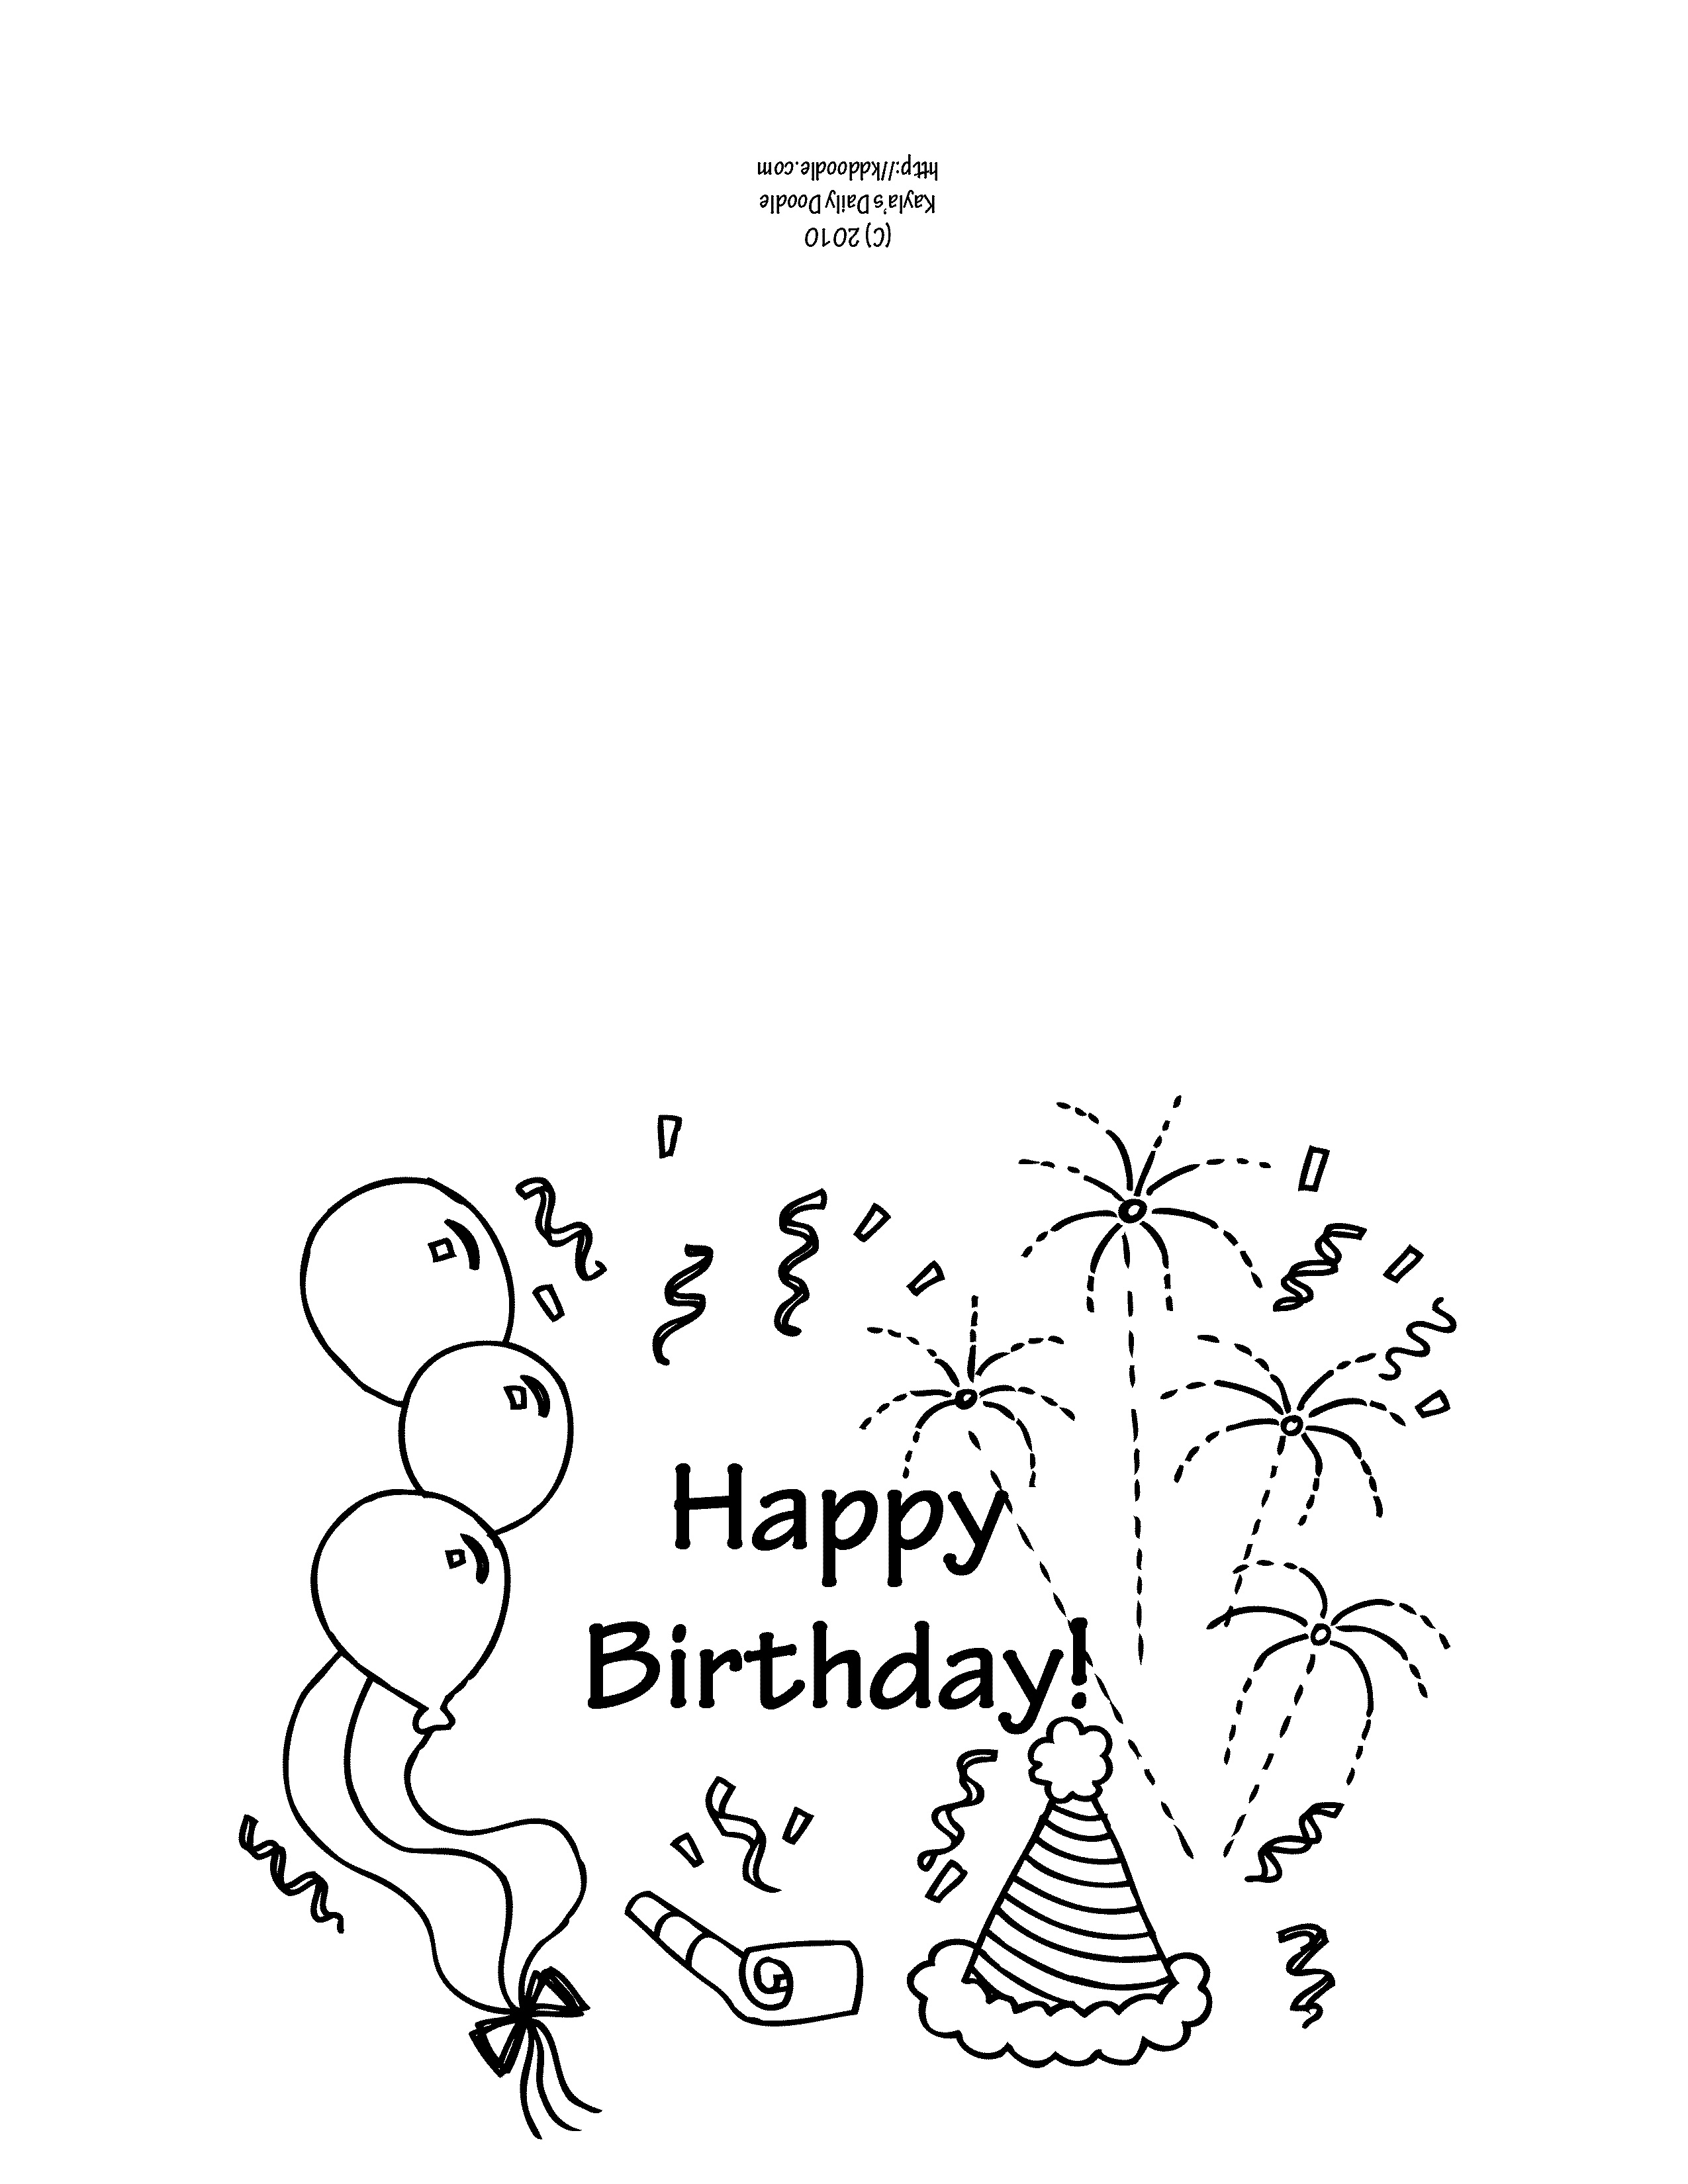 Free Printable Birthday Cards To Color (65+ Images In Collection) Page 2 - Free Printable Birthday Cards To Color